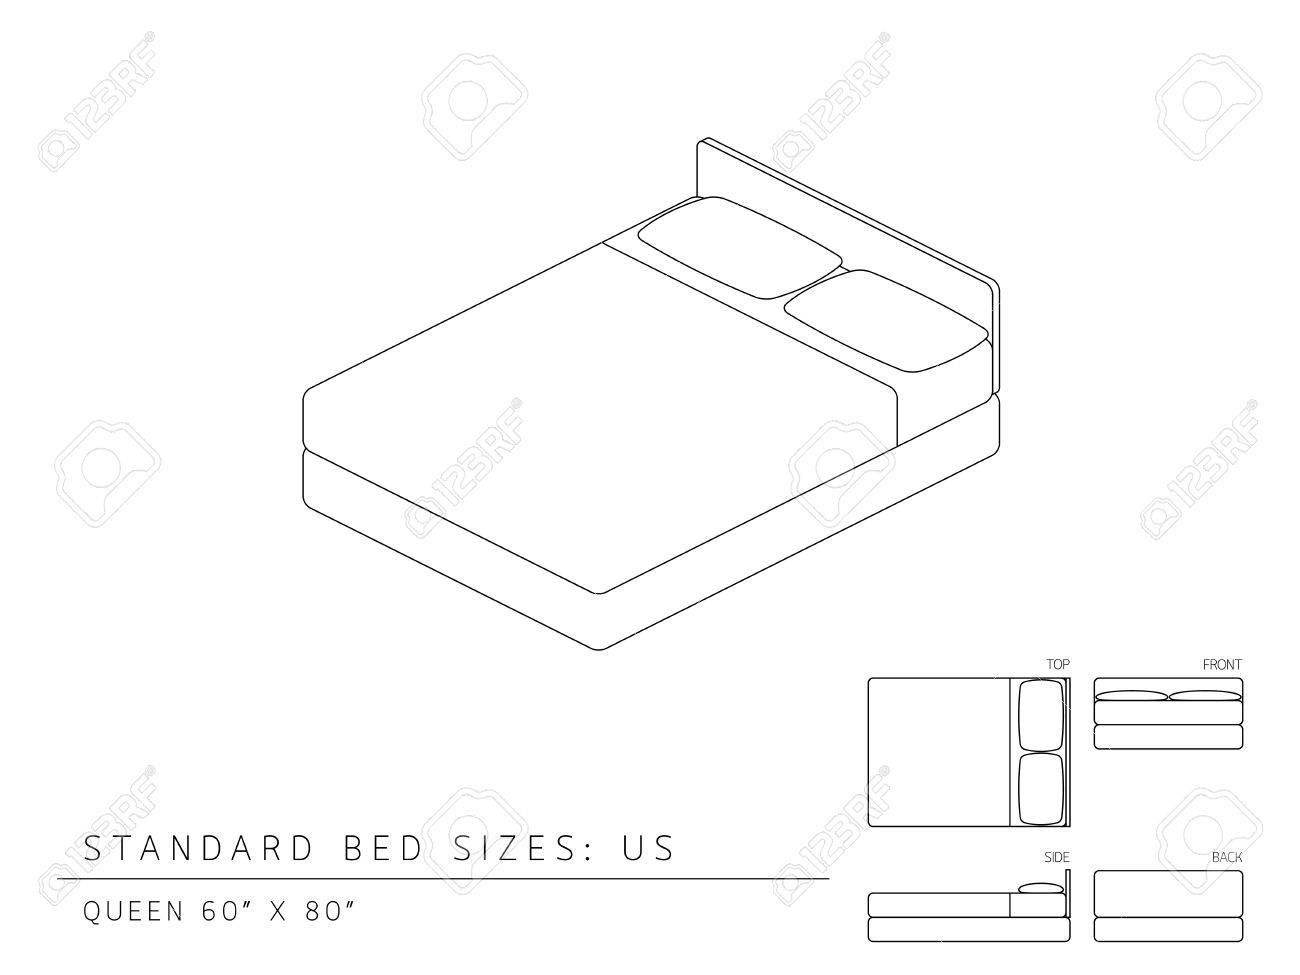 bed sizes. Standard Bed Sizes Of Us (United States America) Queen Size 60 X 80